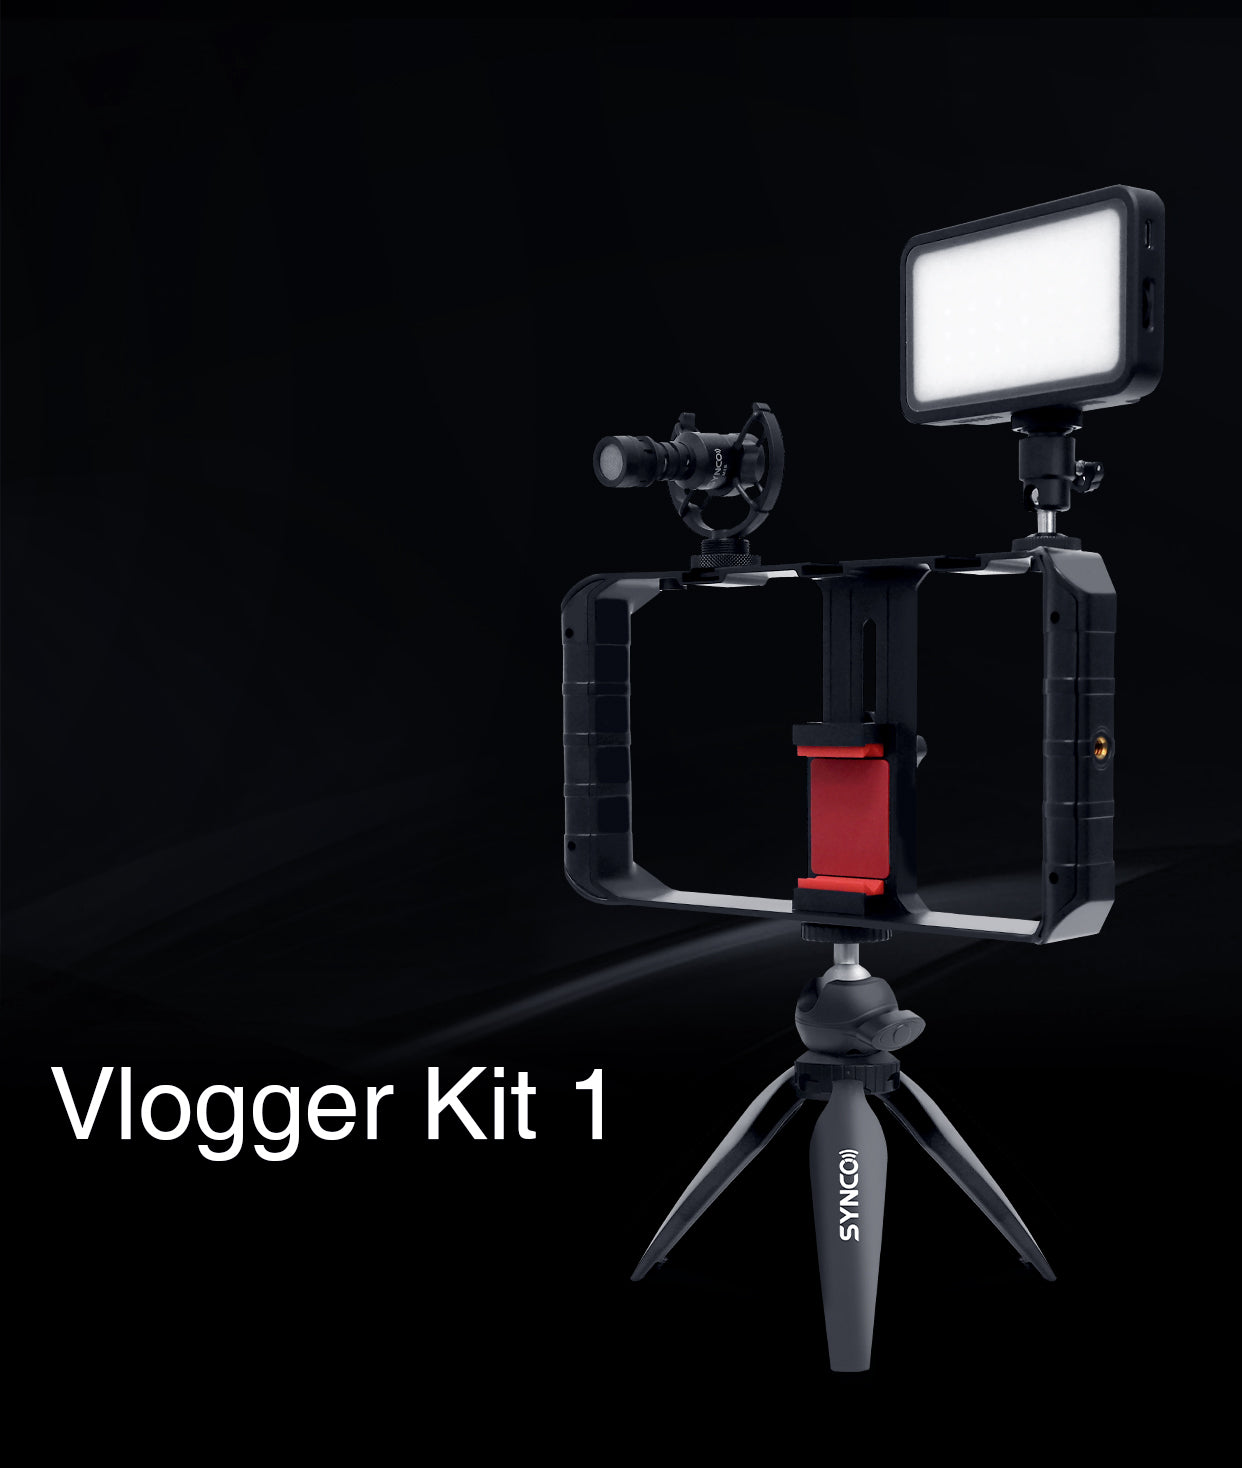 SYNCO Vlogger Kit 1